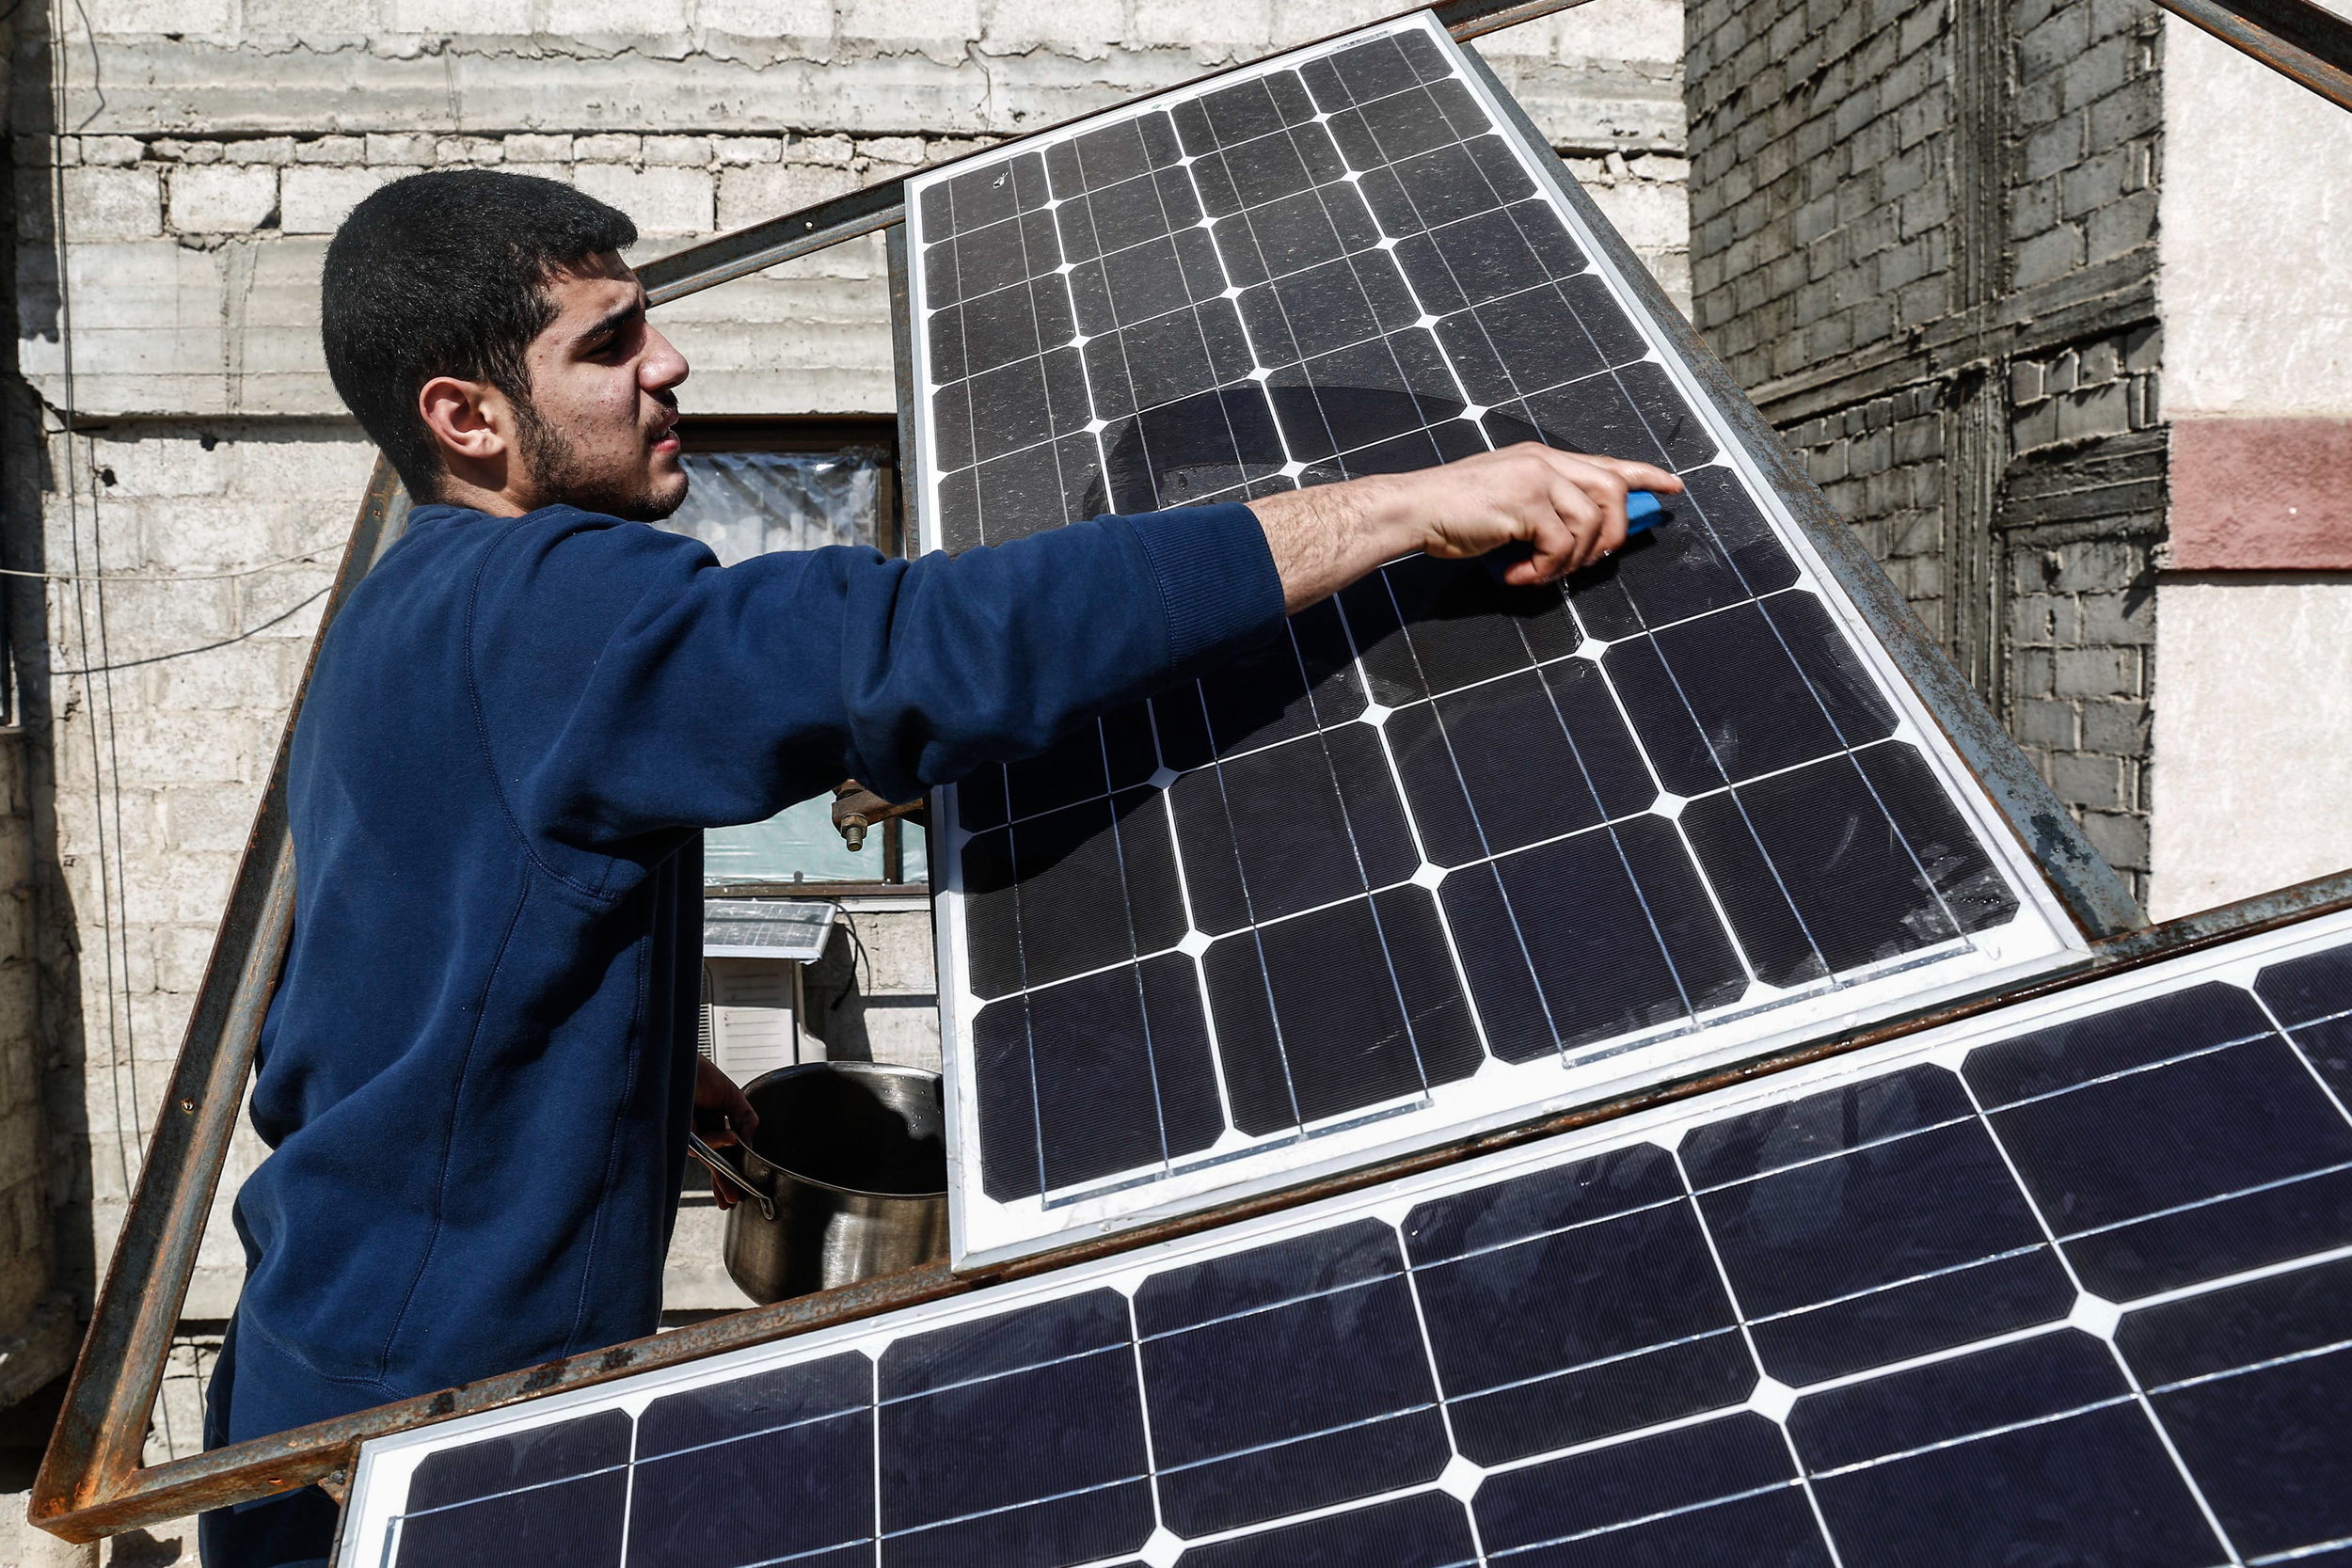 - A man cleans the solar chargers those people started using as an alternative to acquiring electricity power in the Syrian city of Douma.